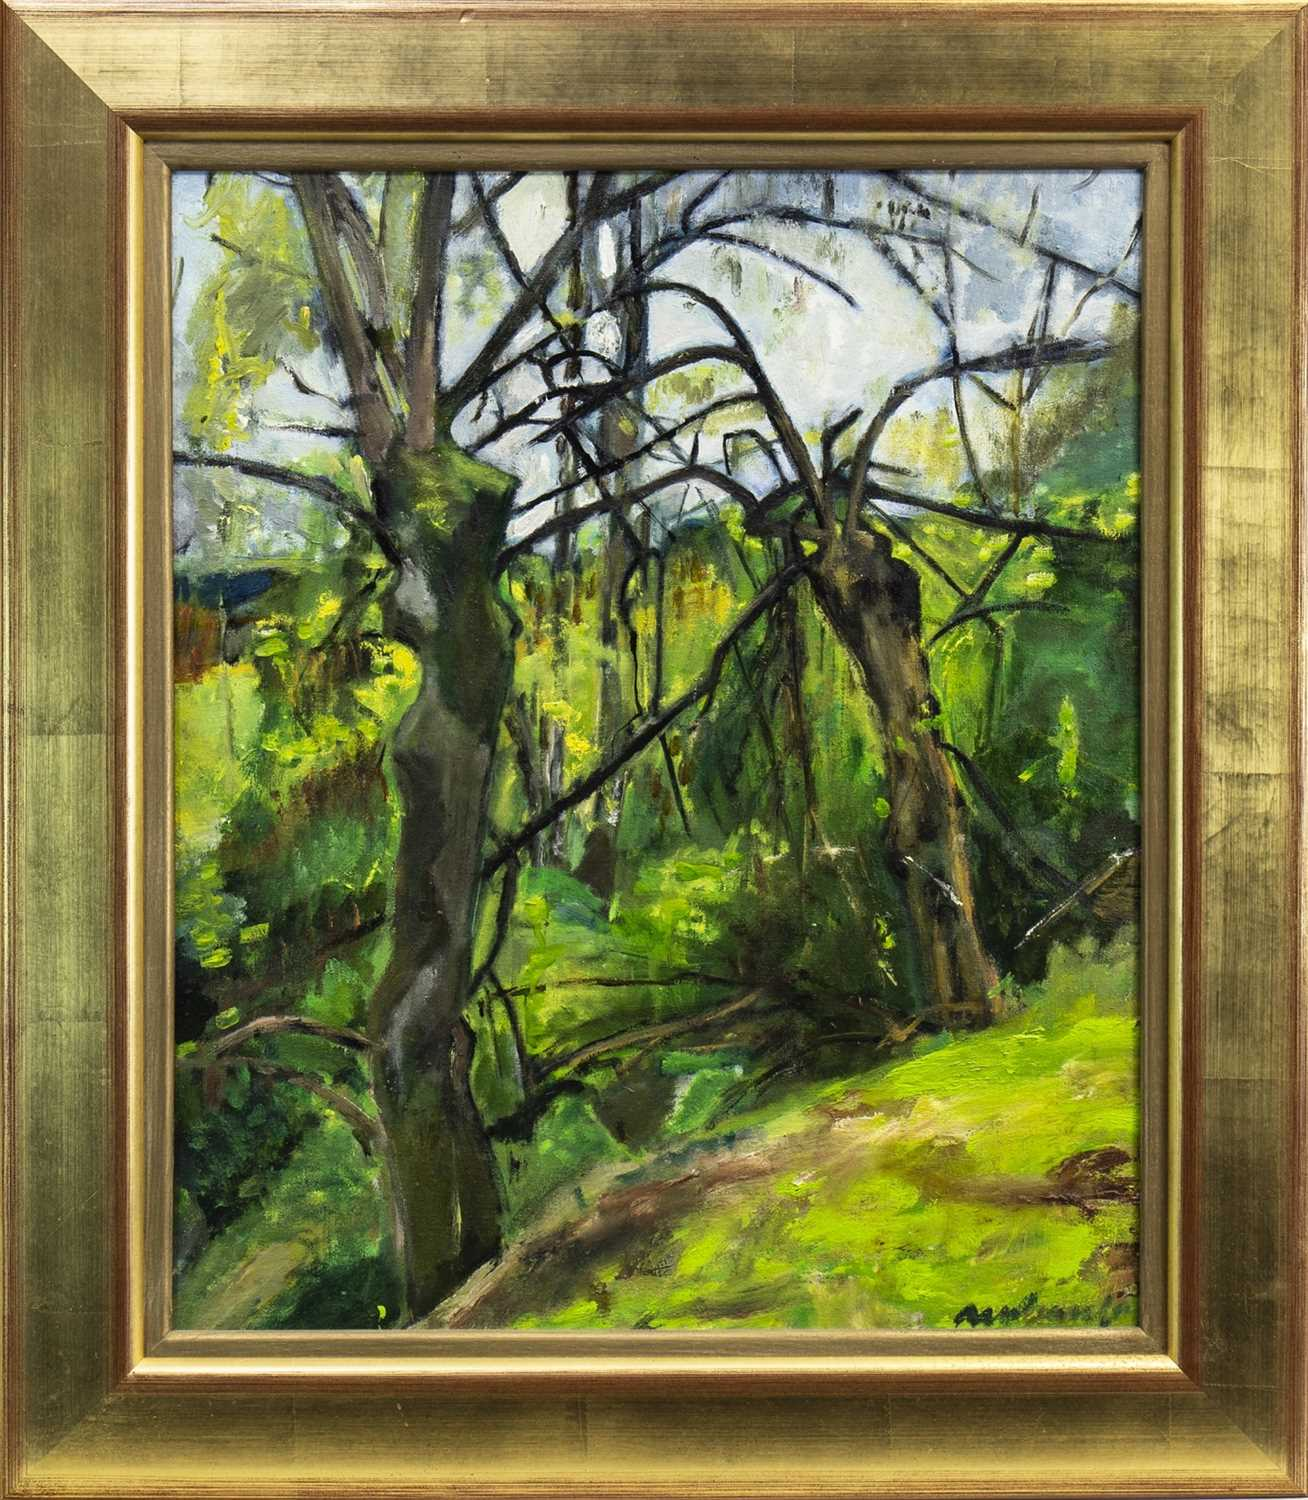 Lot 622-GREEN LANDSCAPE WITH TREES, AN OIL